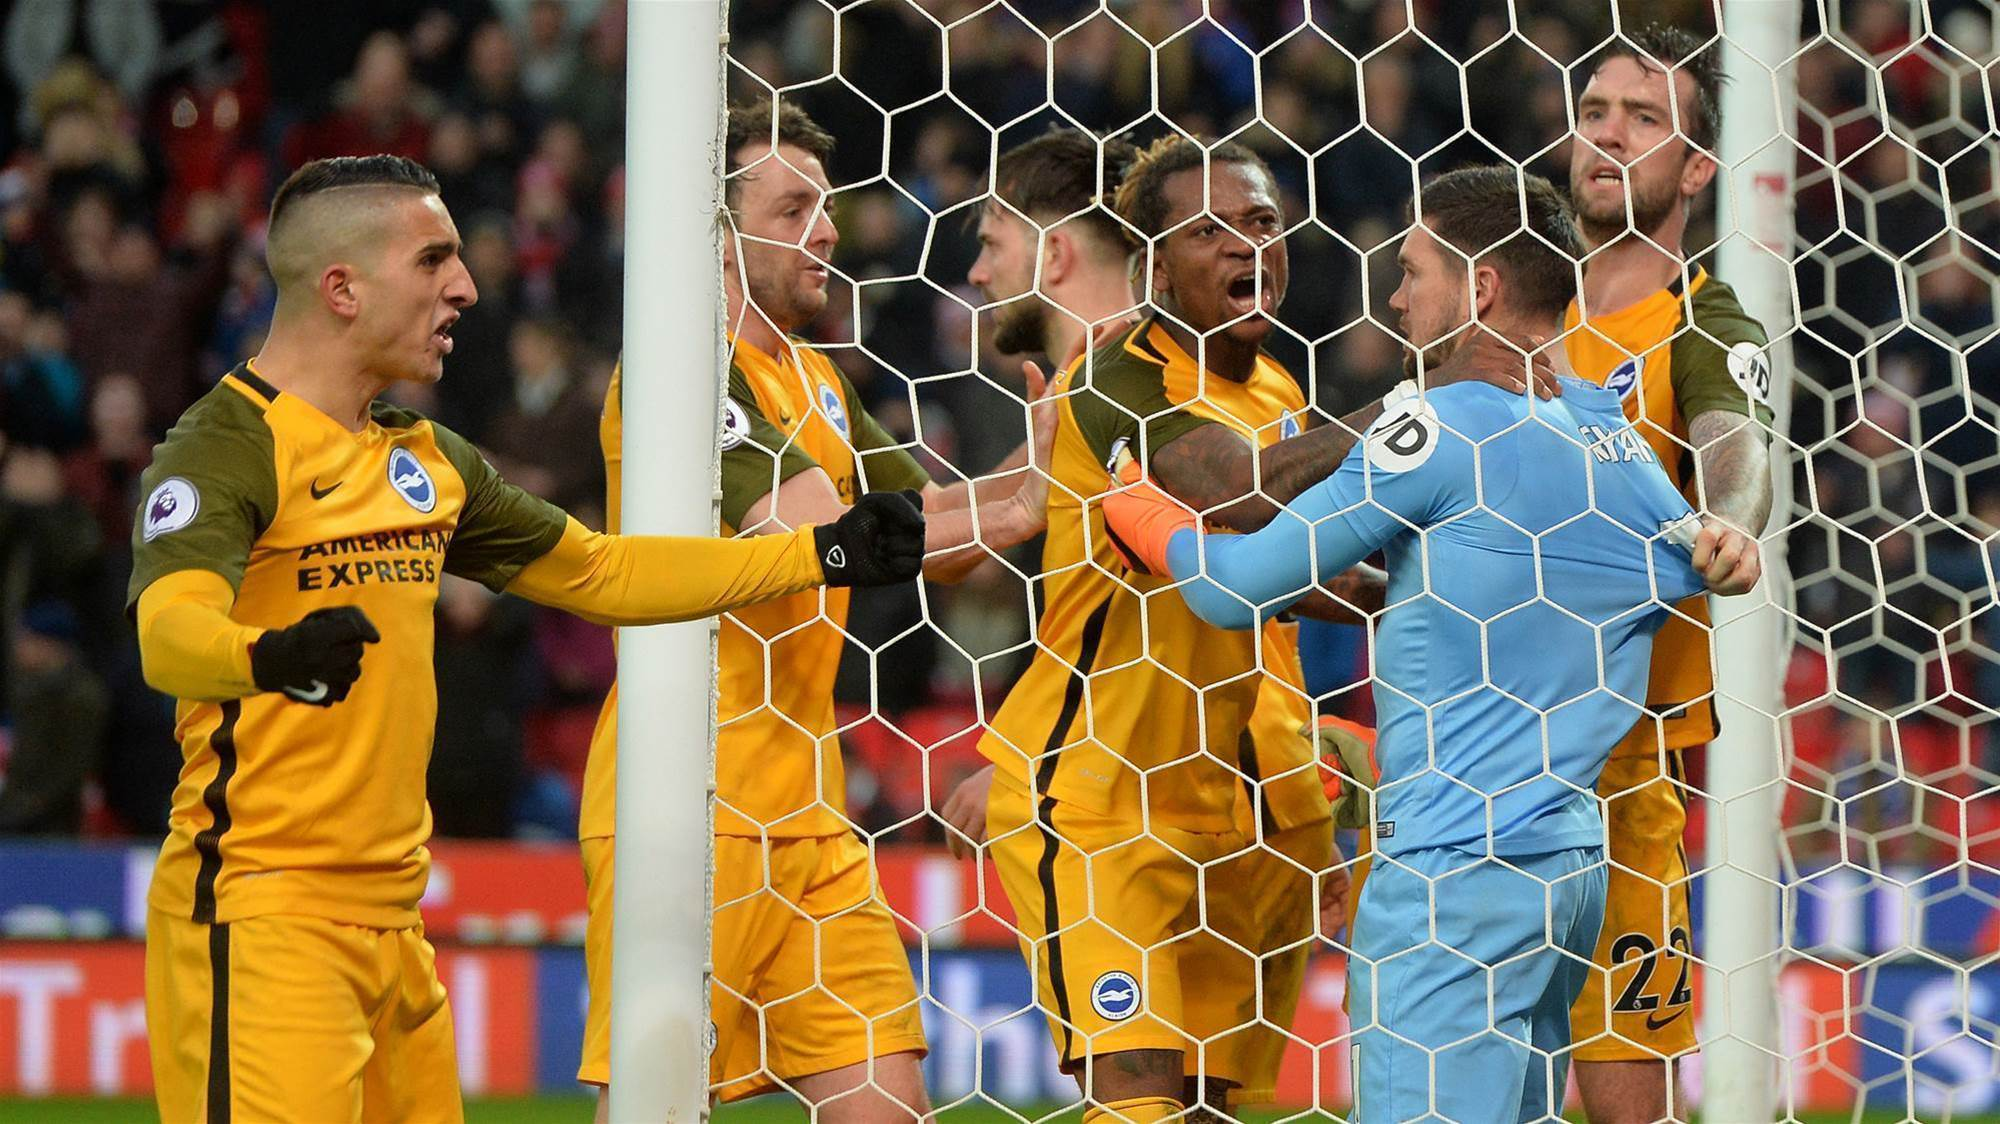 Ryan penalty save rescues point for Brighton